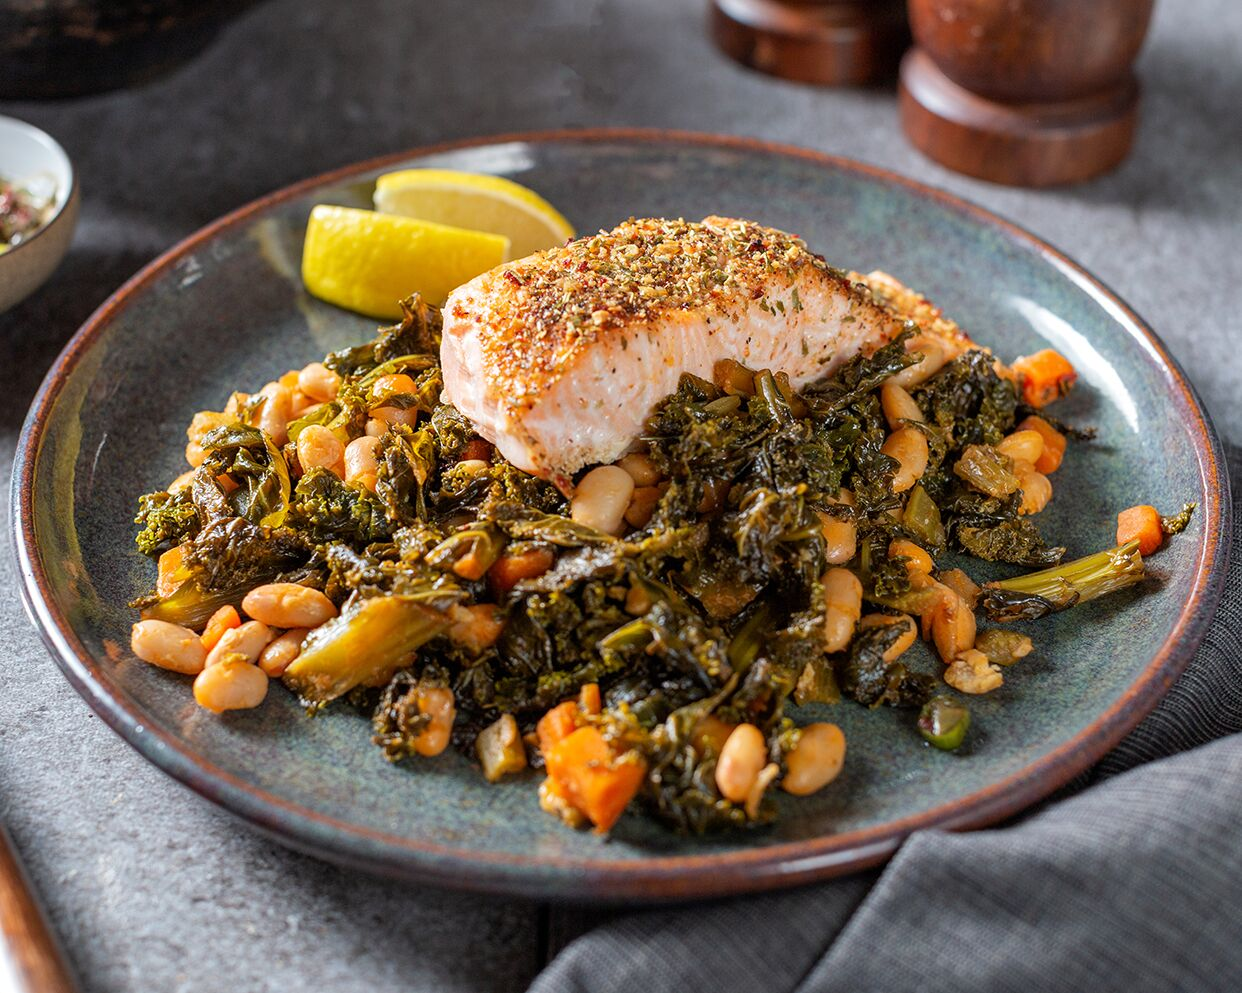 Healthy quick meals: a plate of salmon with beans and greens